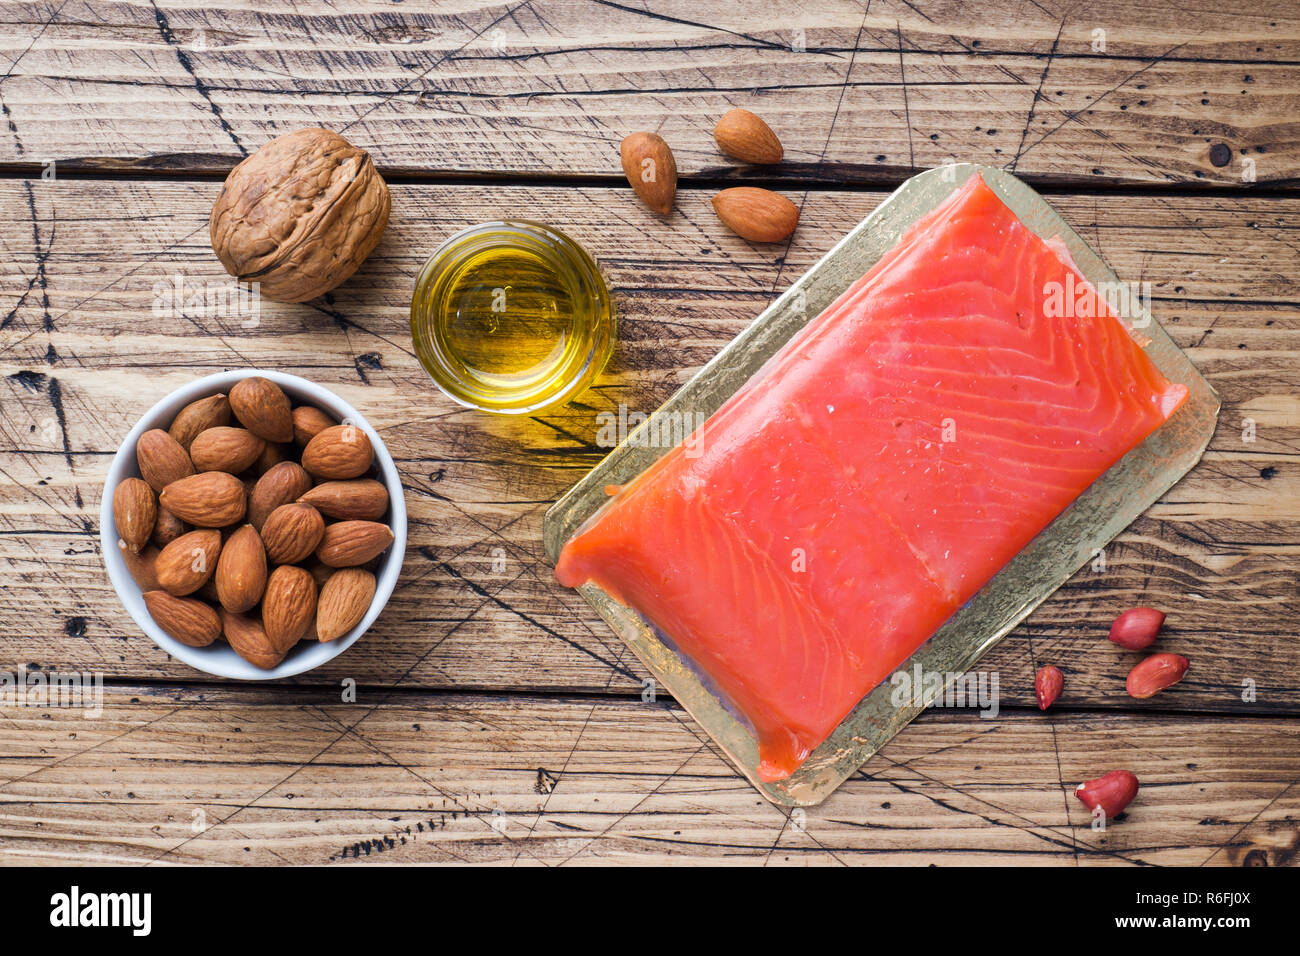 Concept Healthy food antioxidant products: fish nuts and oil on wooden background - Stock Image